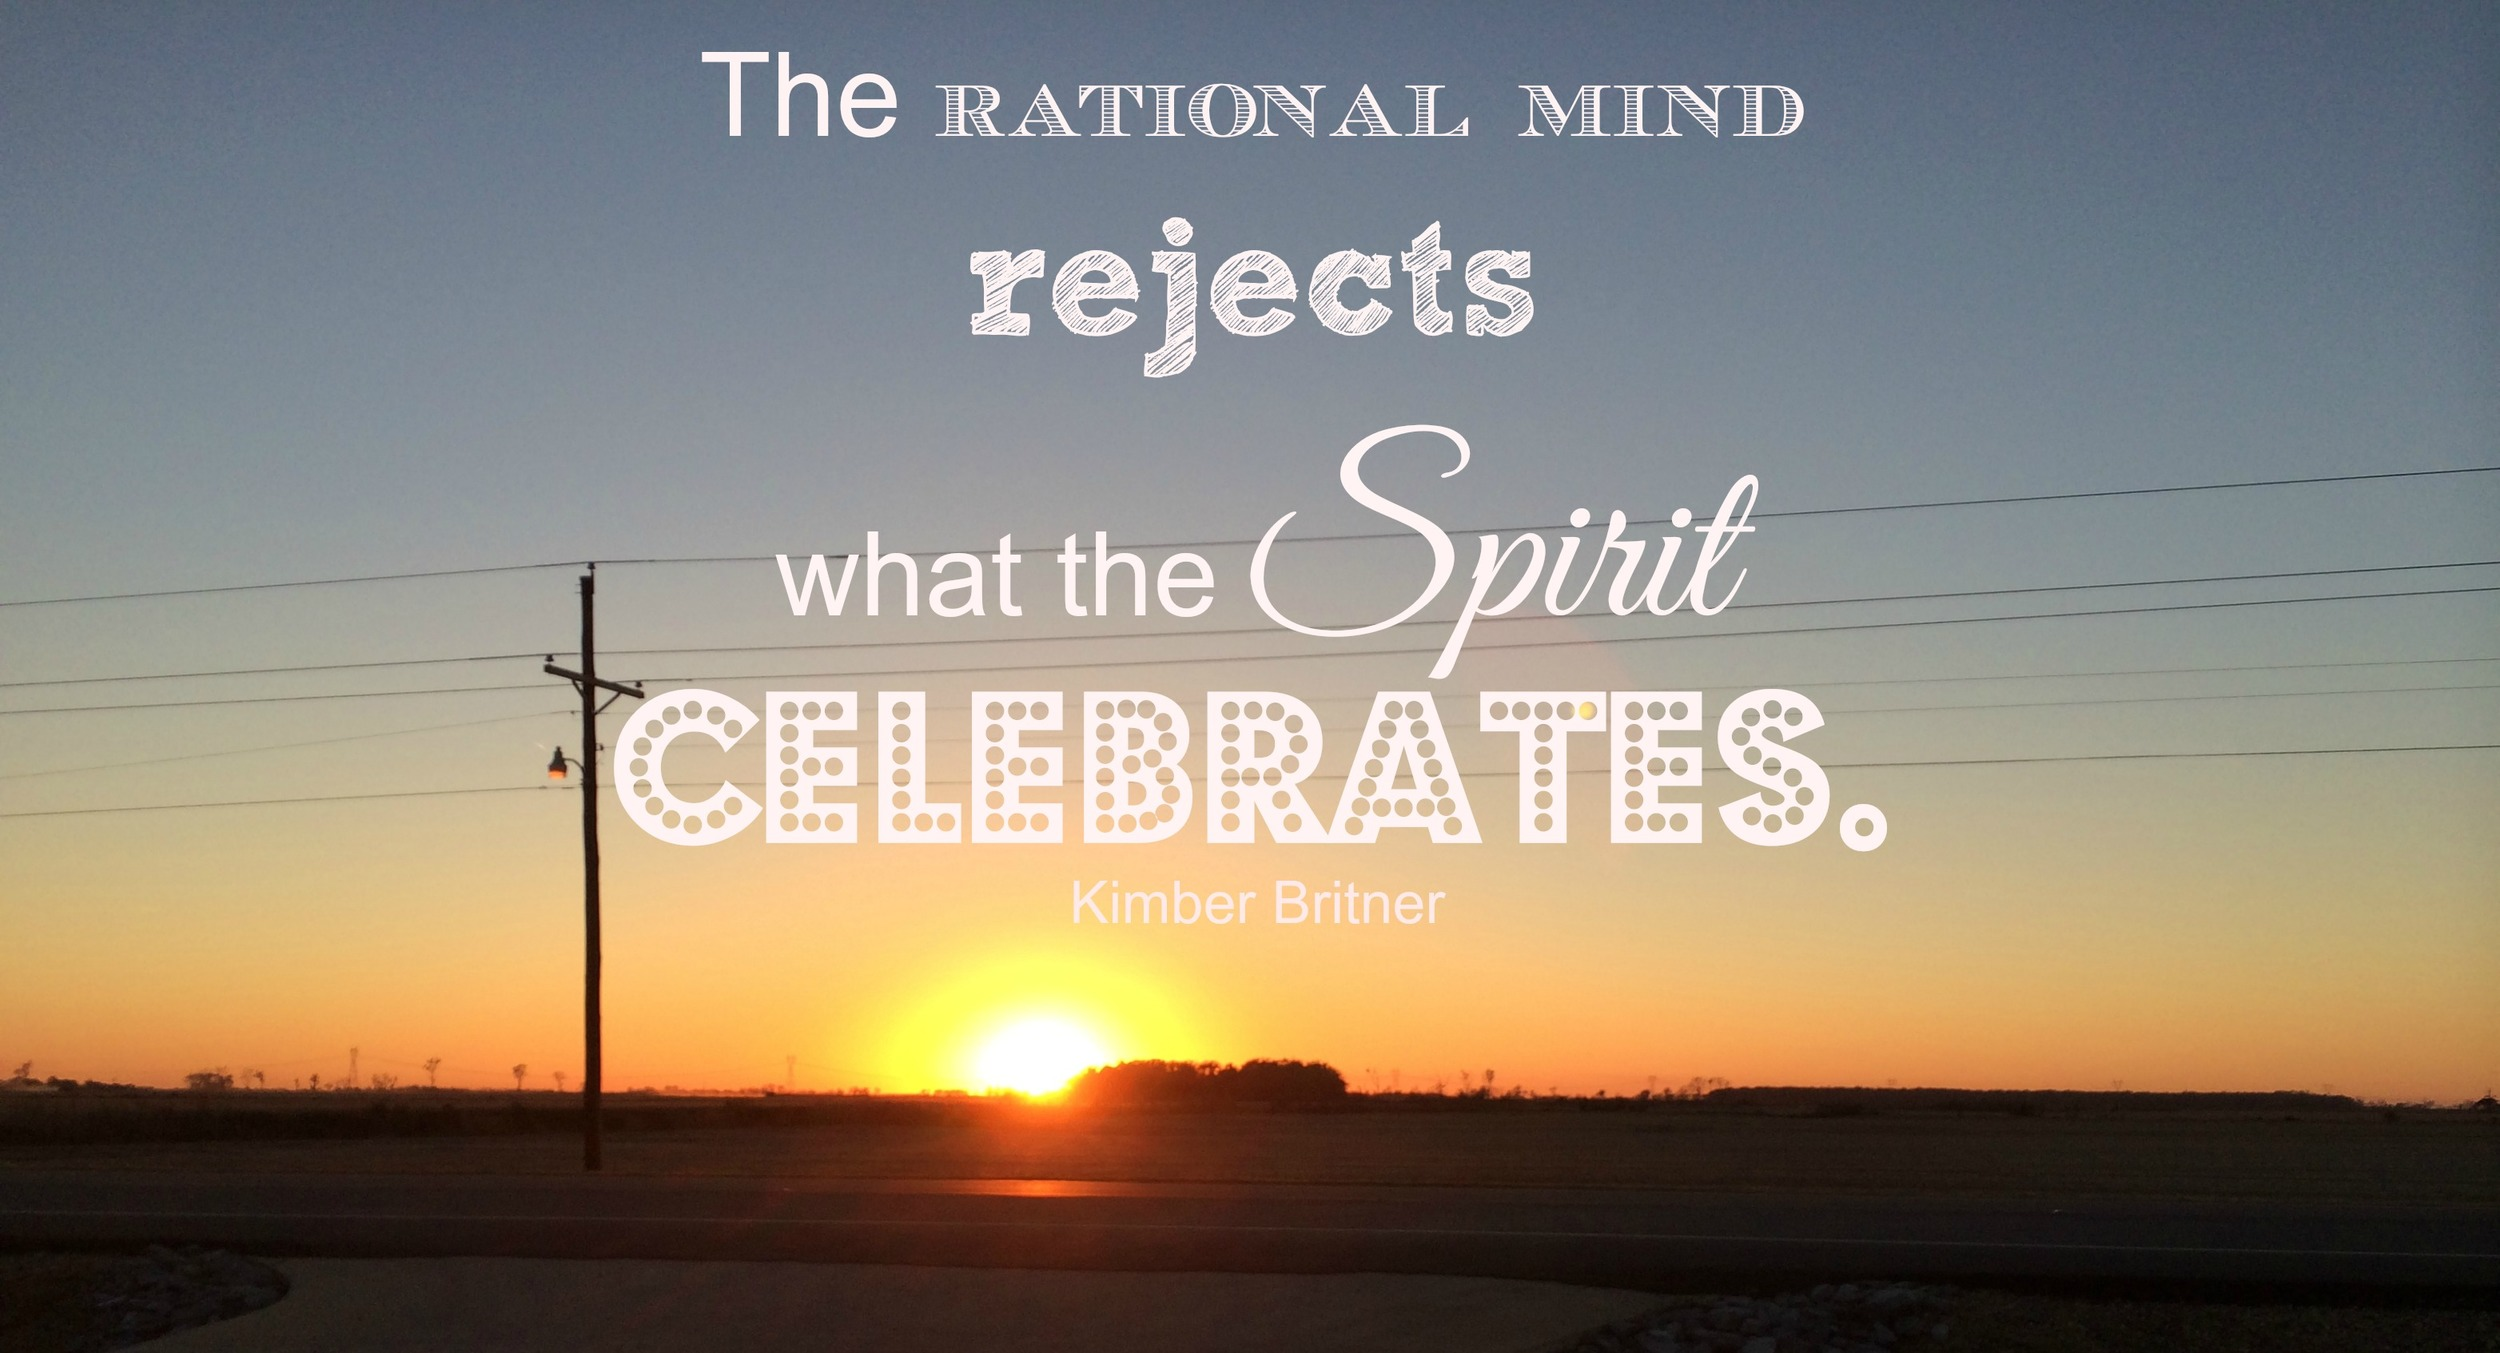 Rational mind rejects